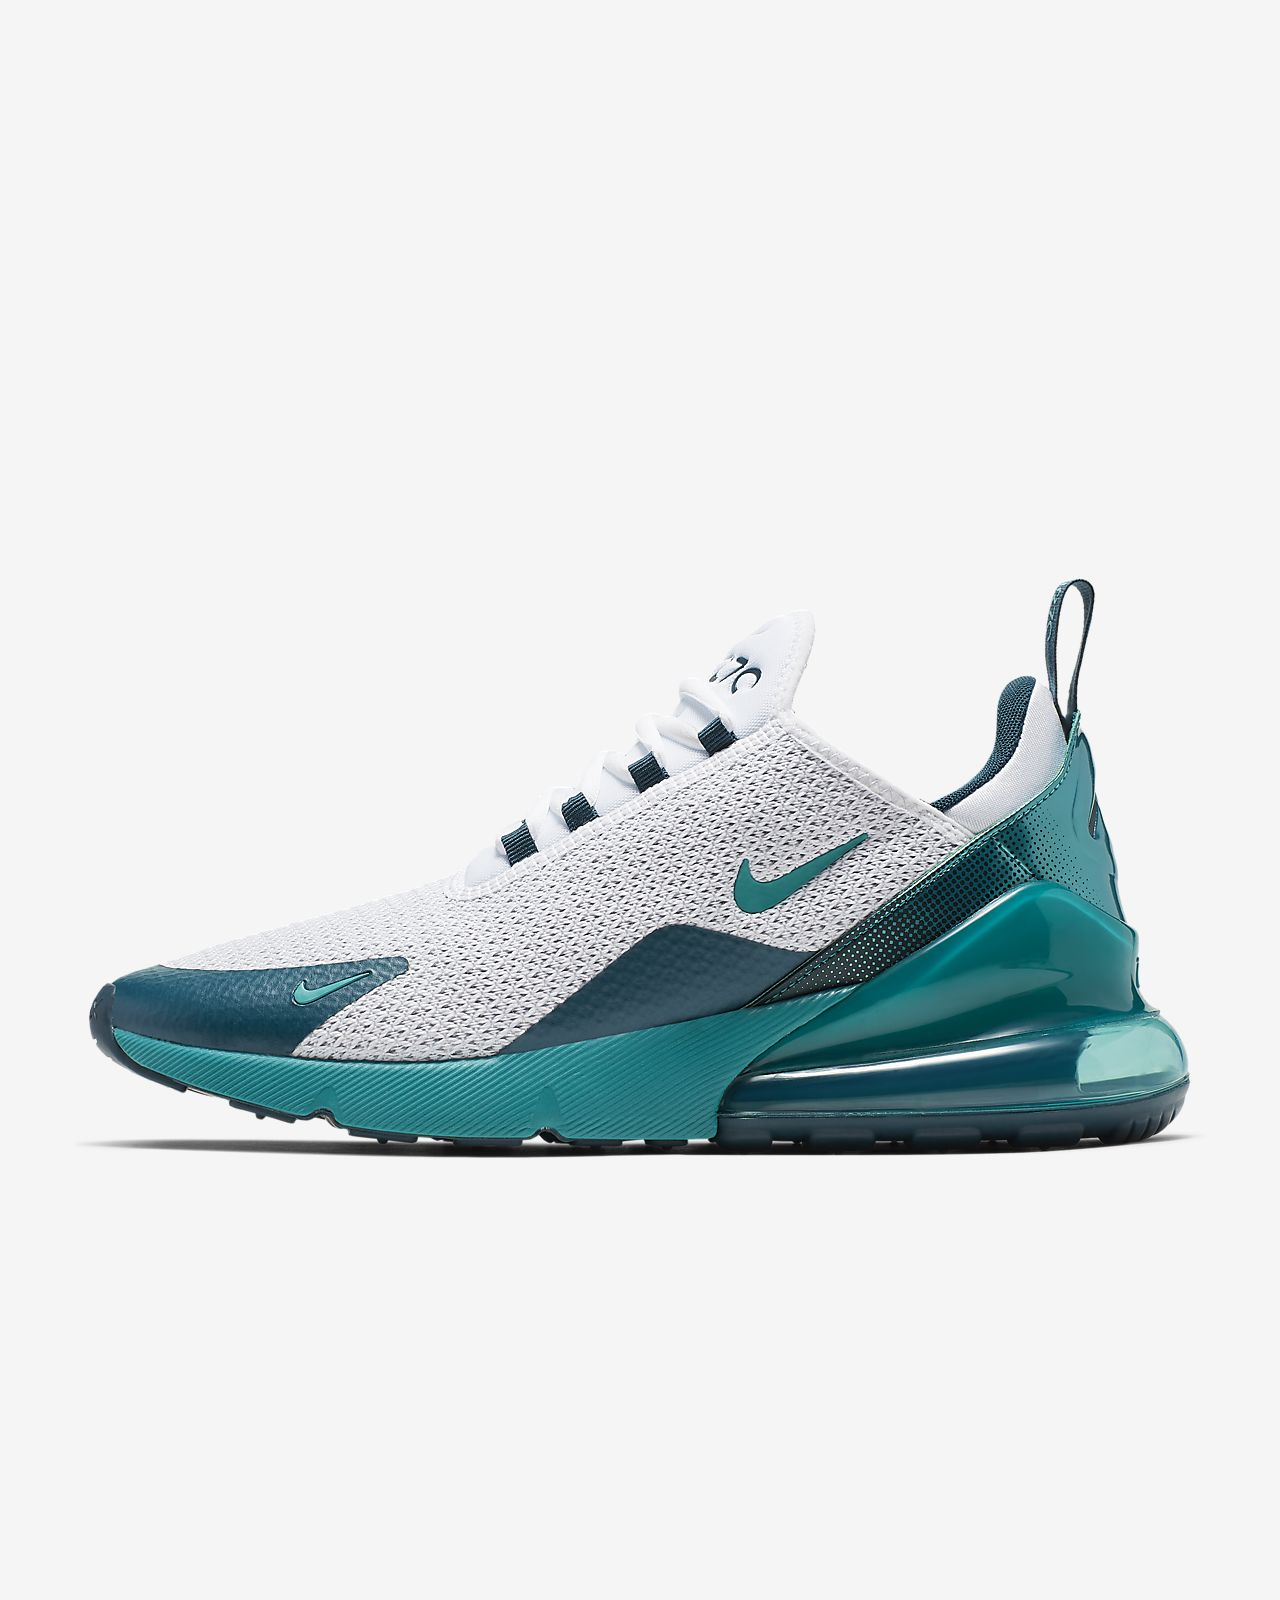 detailed look 2869c 96e70 Nike Air Max 270 SE Men's Shoe